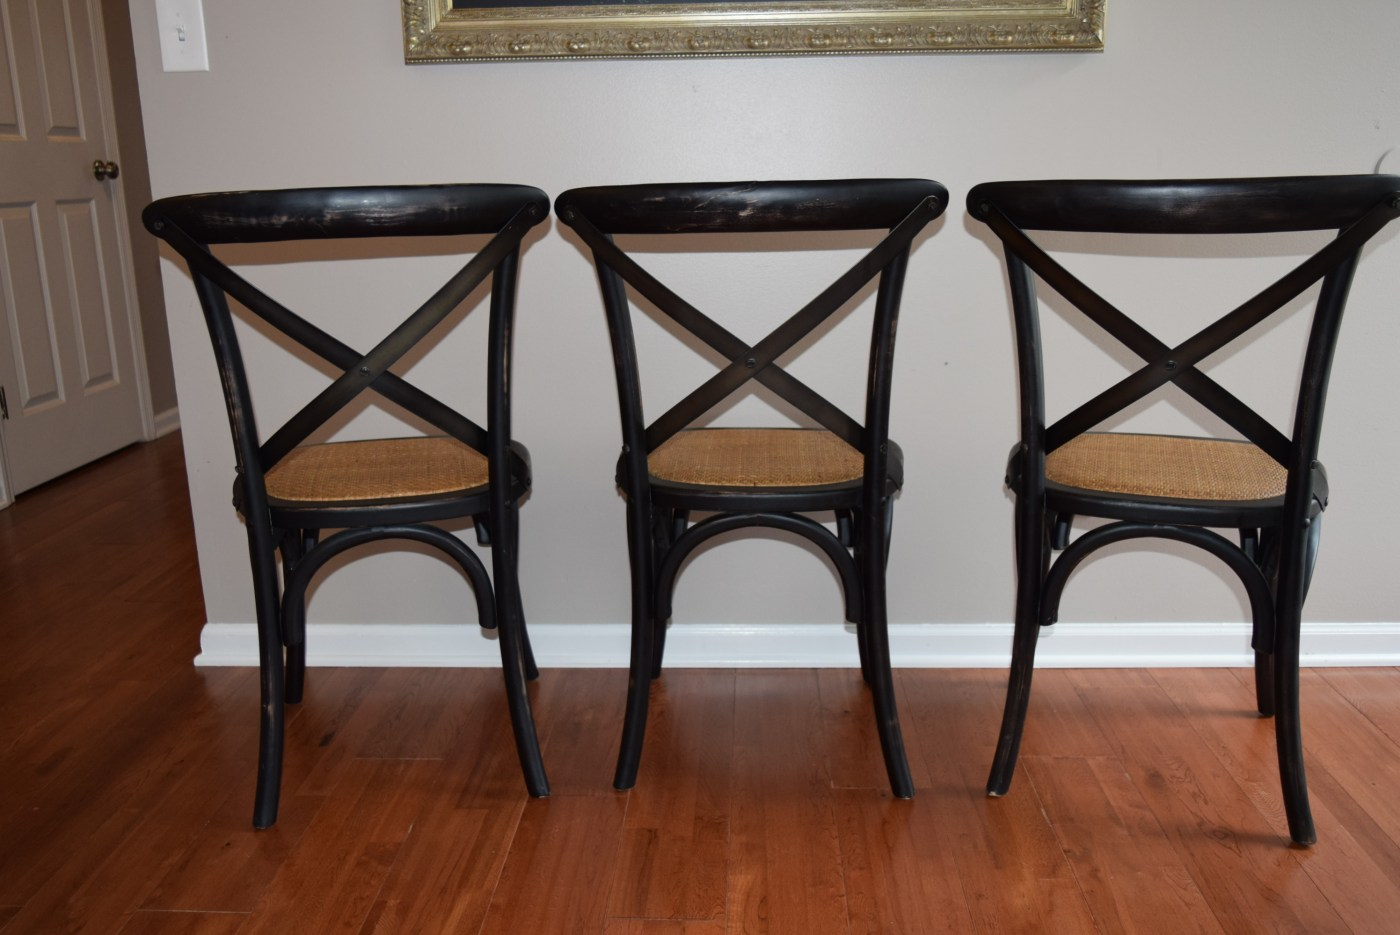 Arhaus Dining Chairs Six Arhaus Quotcadence Quot Dining Chairs Ebth